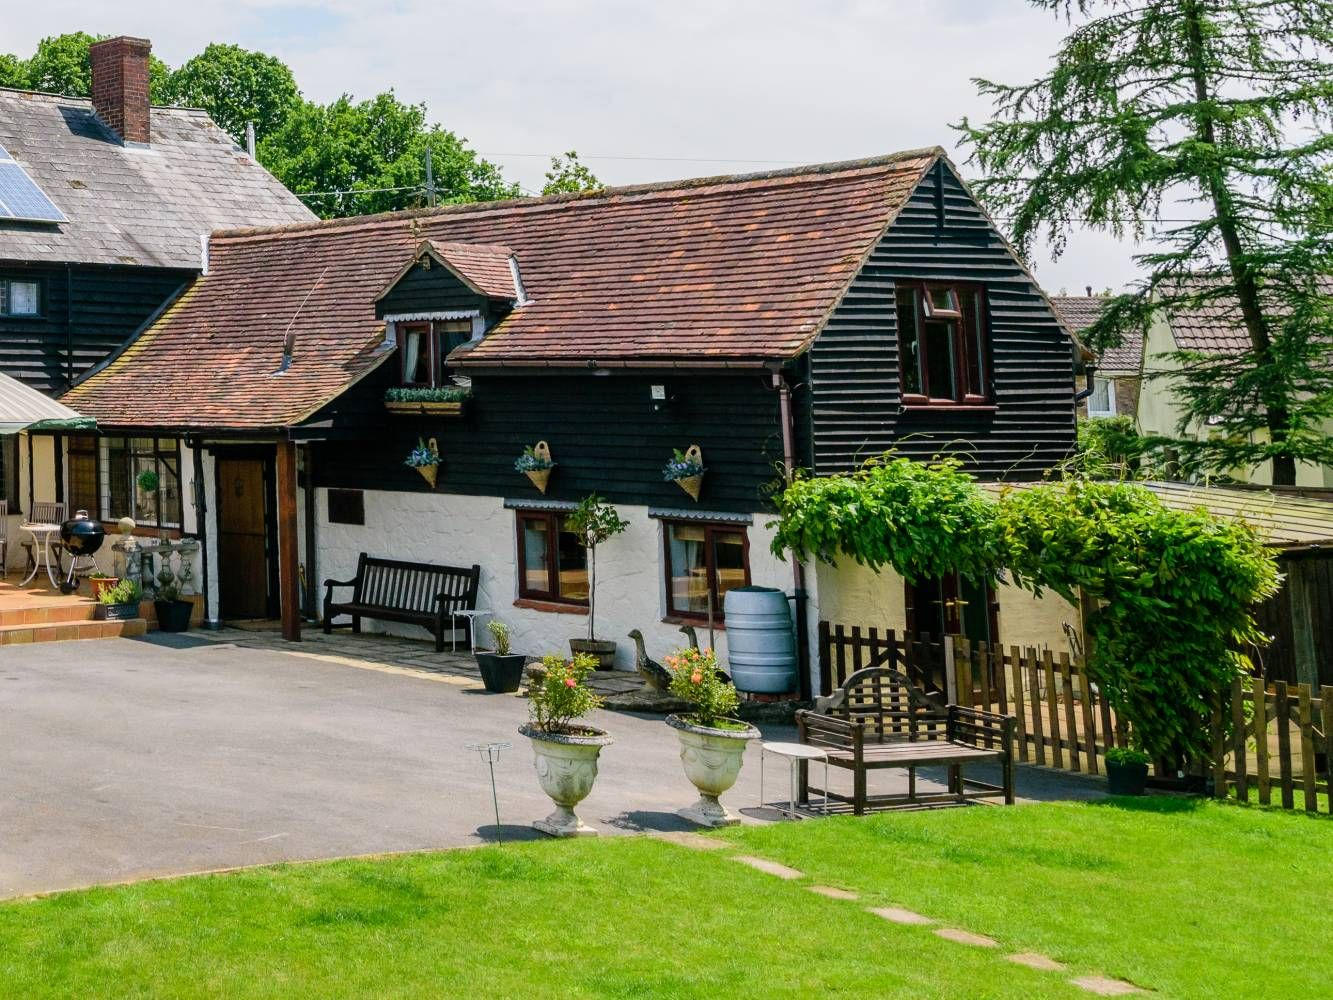 Old Causeway Bakery Cottage & The Stables Loft, Hazelbury